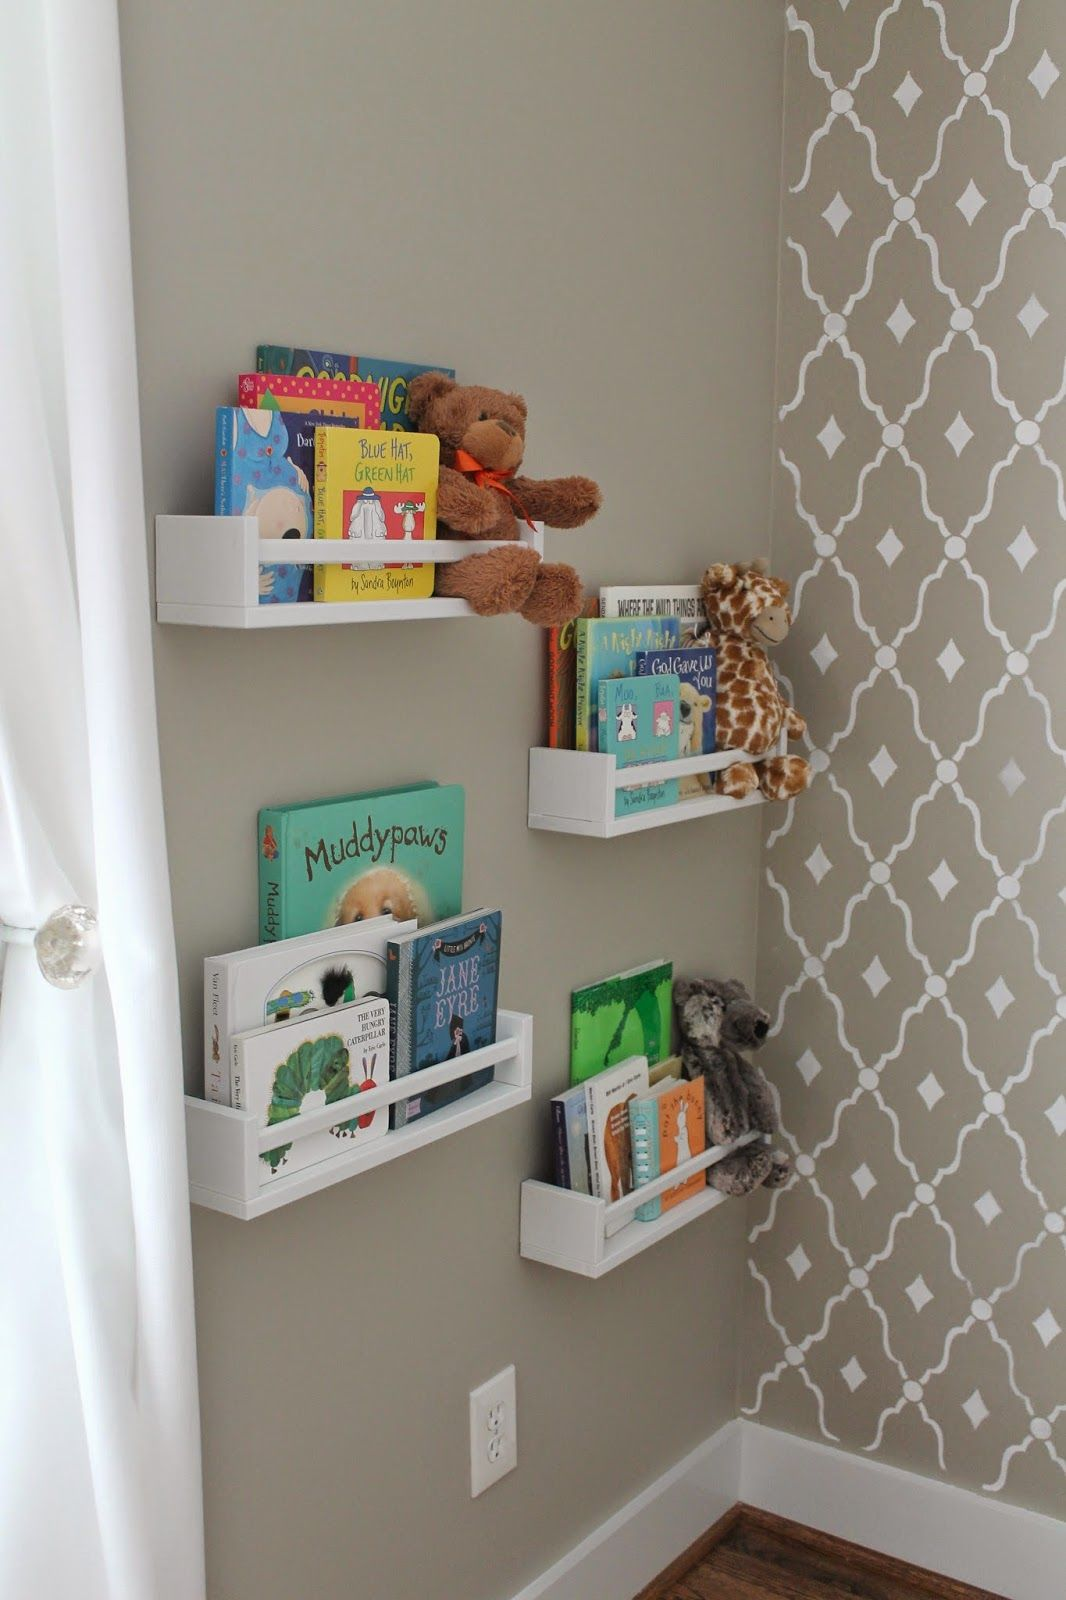 Wall Book Racks Ikea Spice Racks Used As Bookshelves Nursery Inspiration